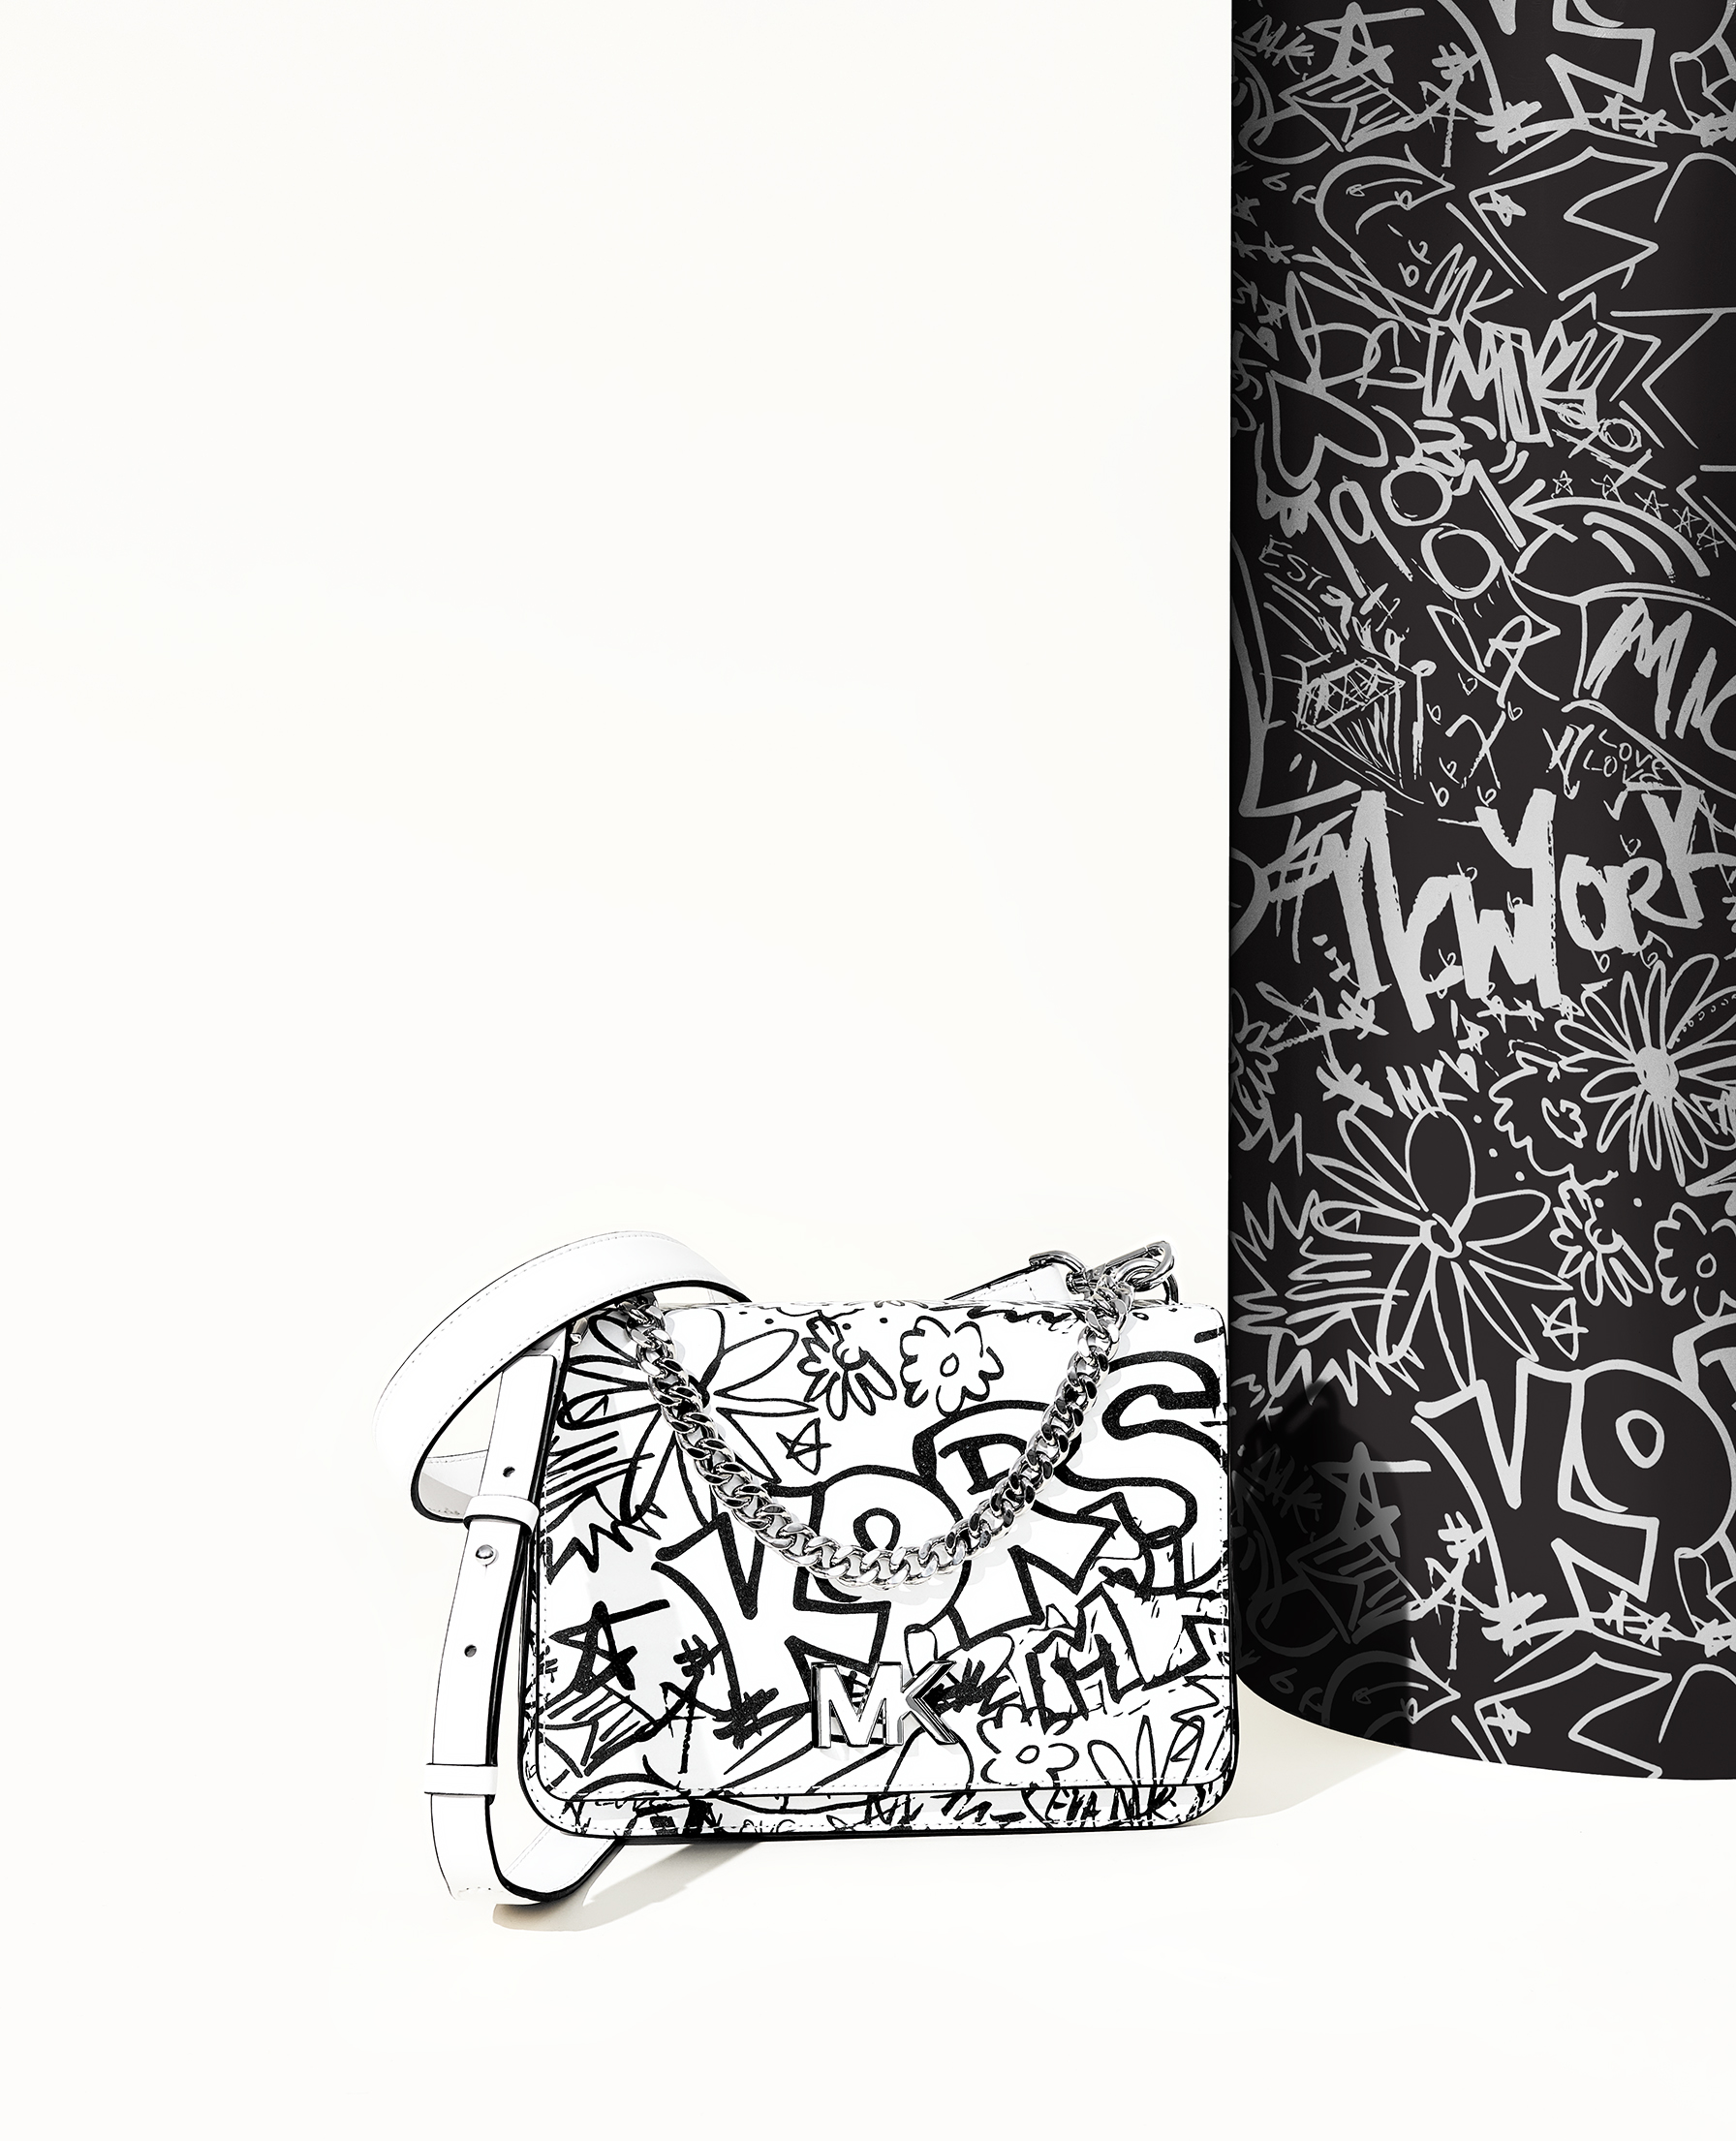 #MKGO Graffiti, la nuova capsule collection di Michael Kors, foto